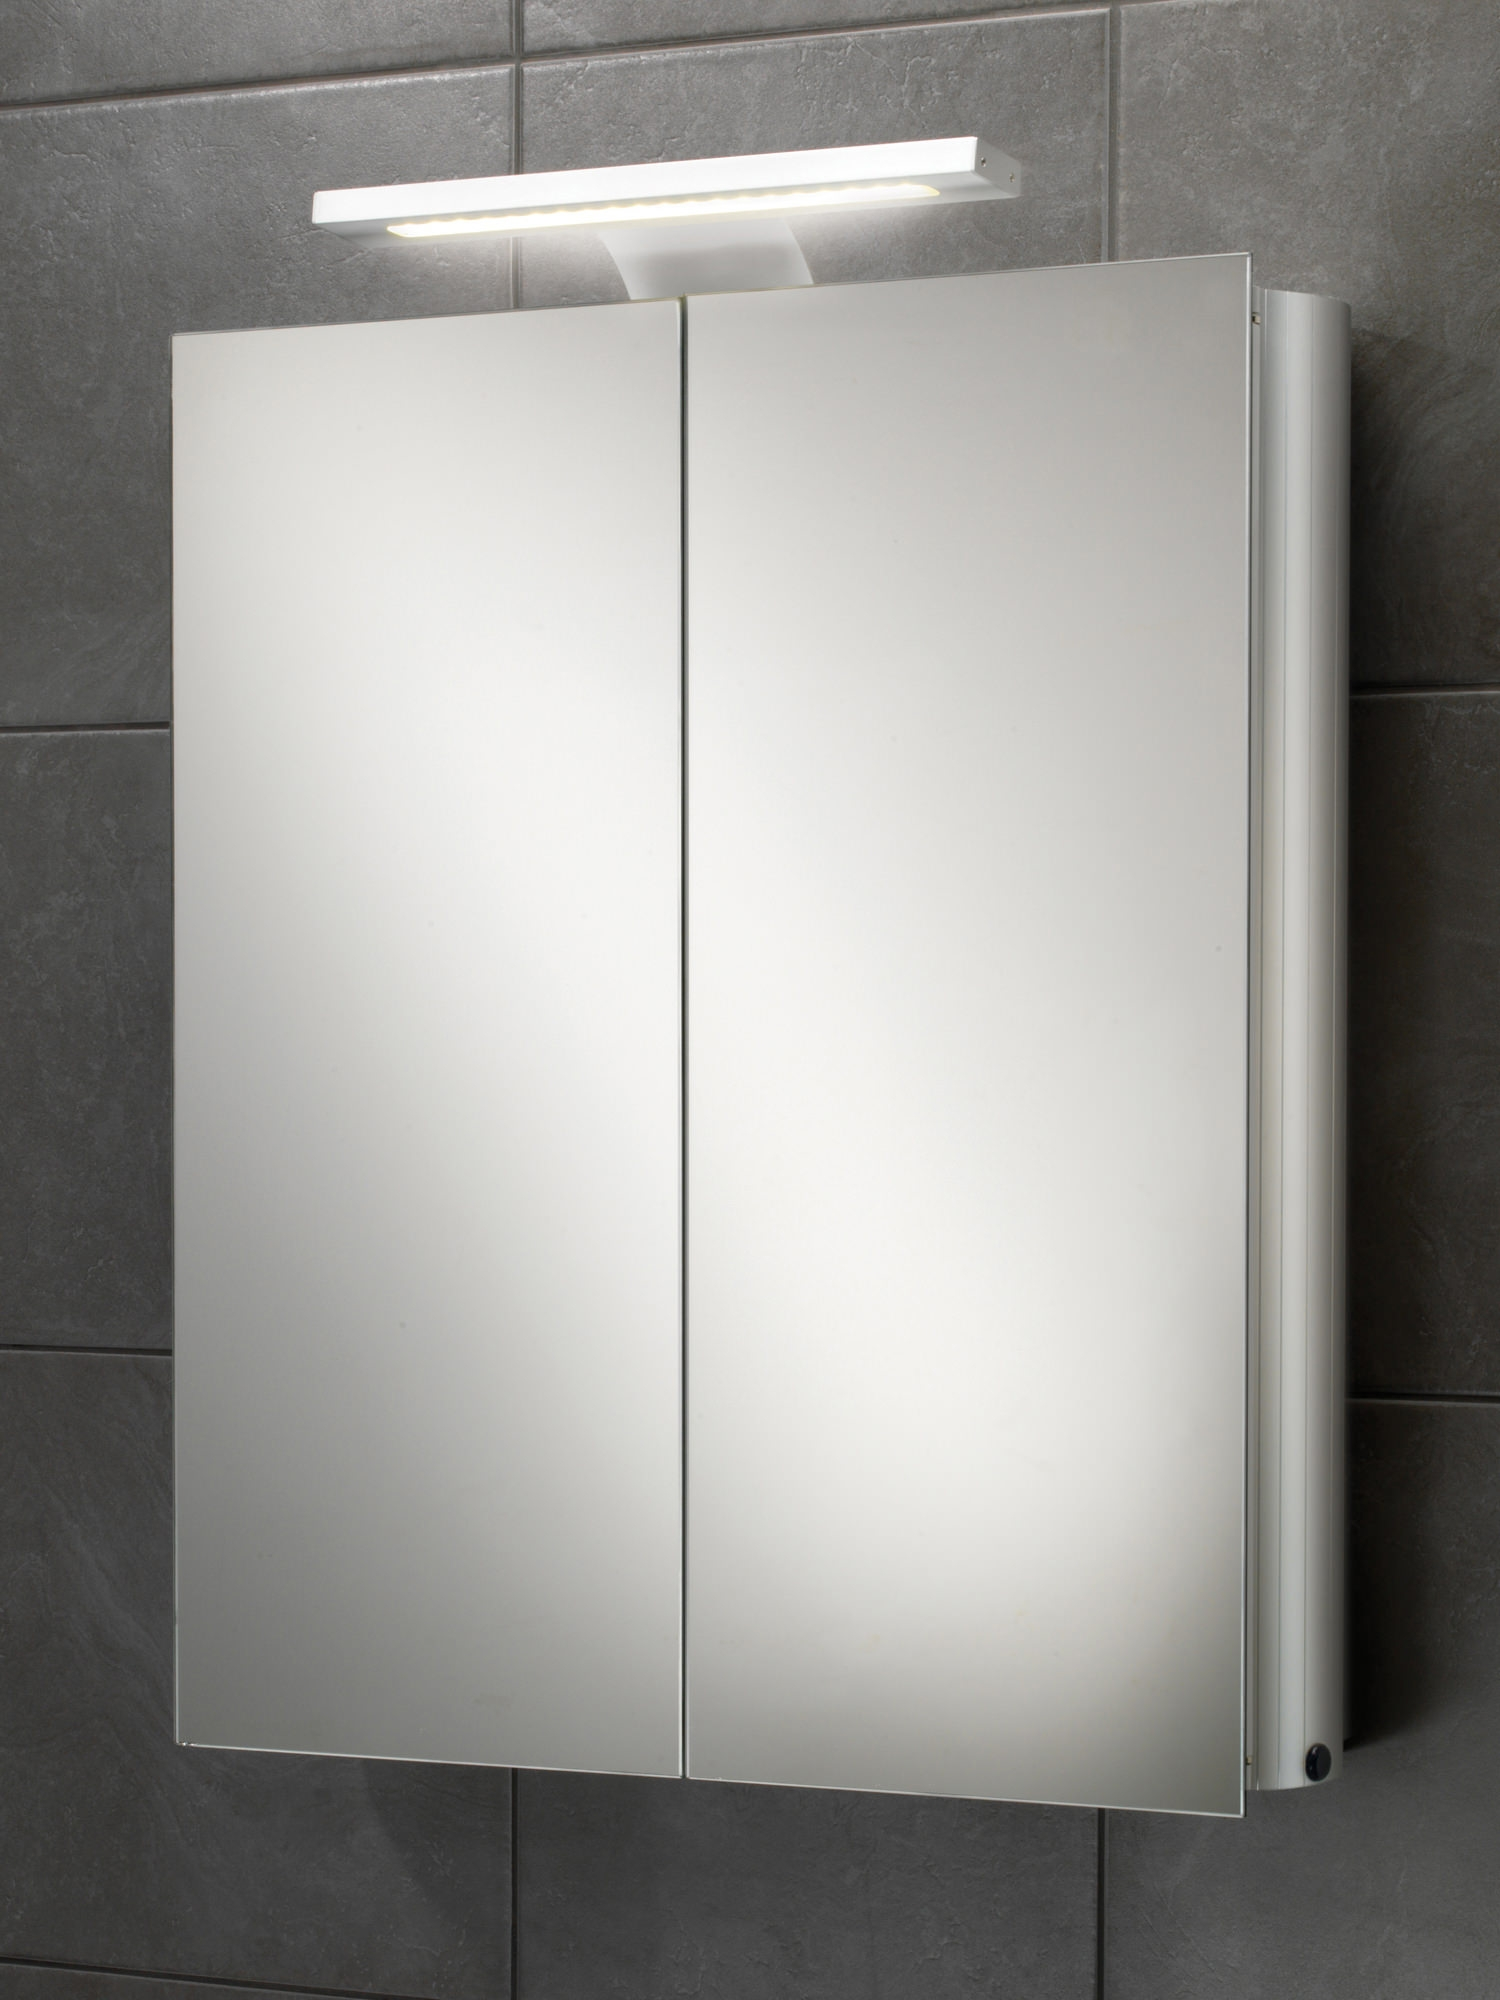 500mm Wide Mirrored Bathroom Cabinet